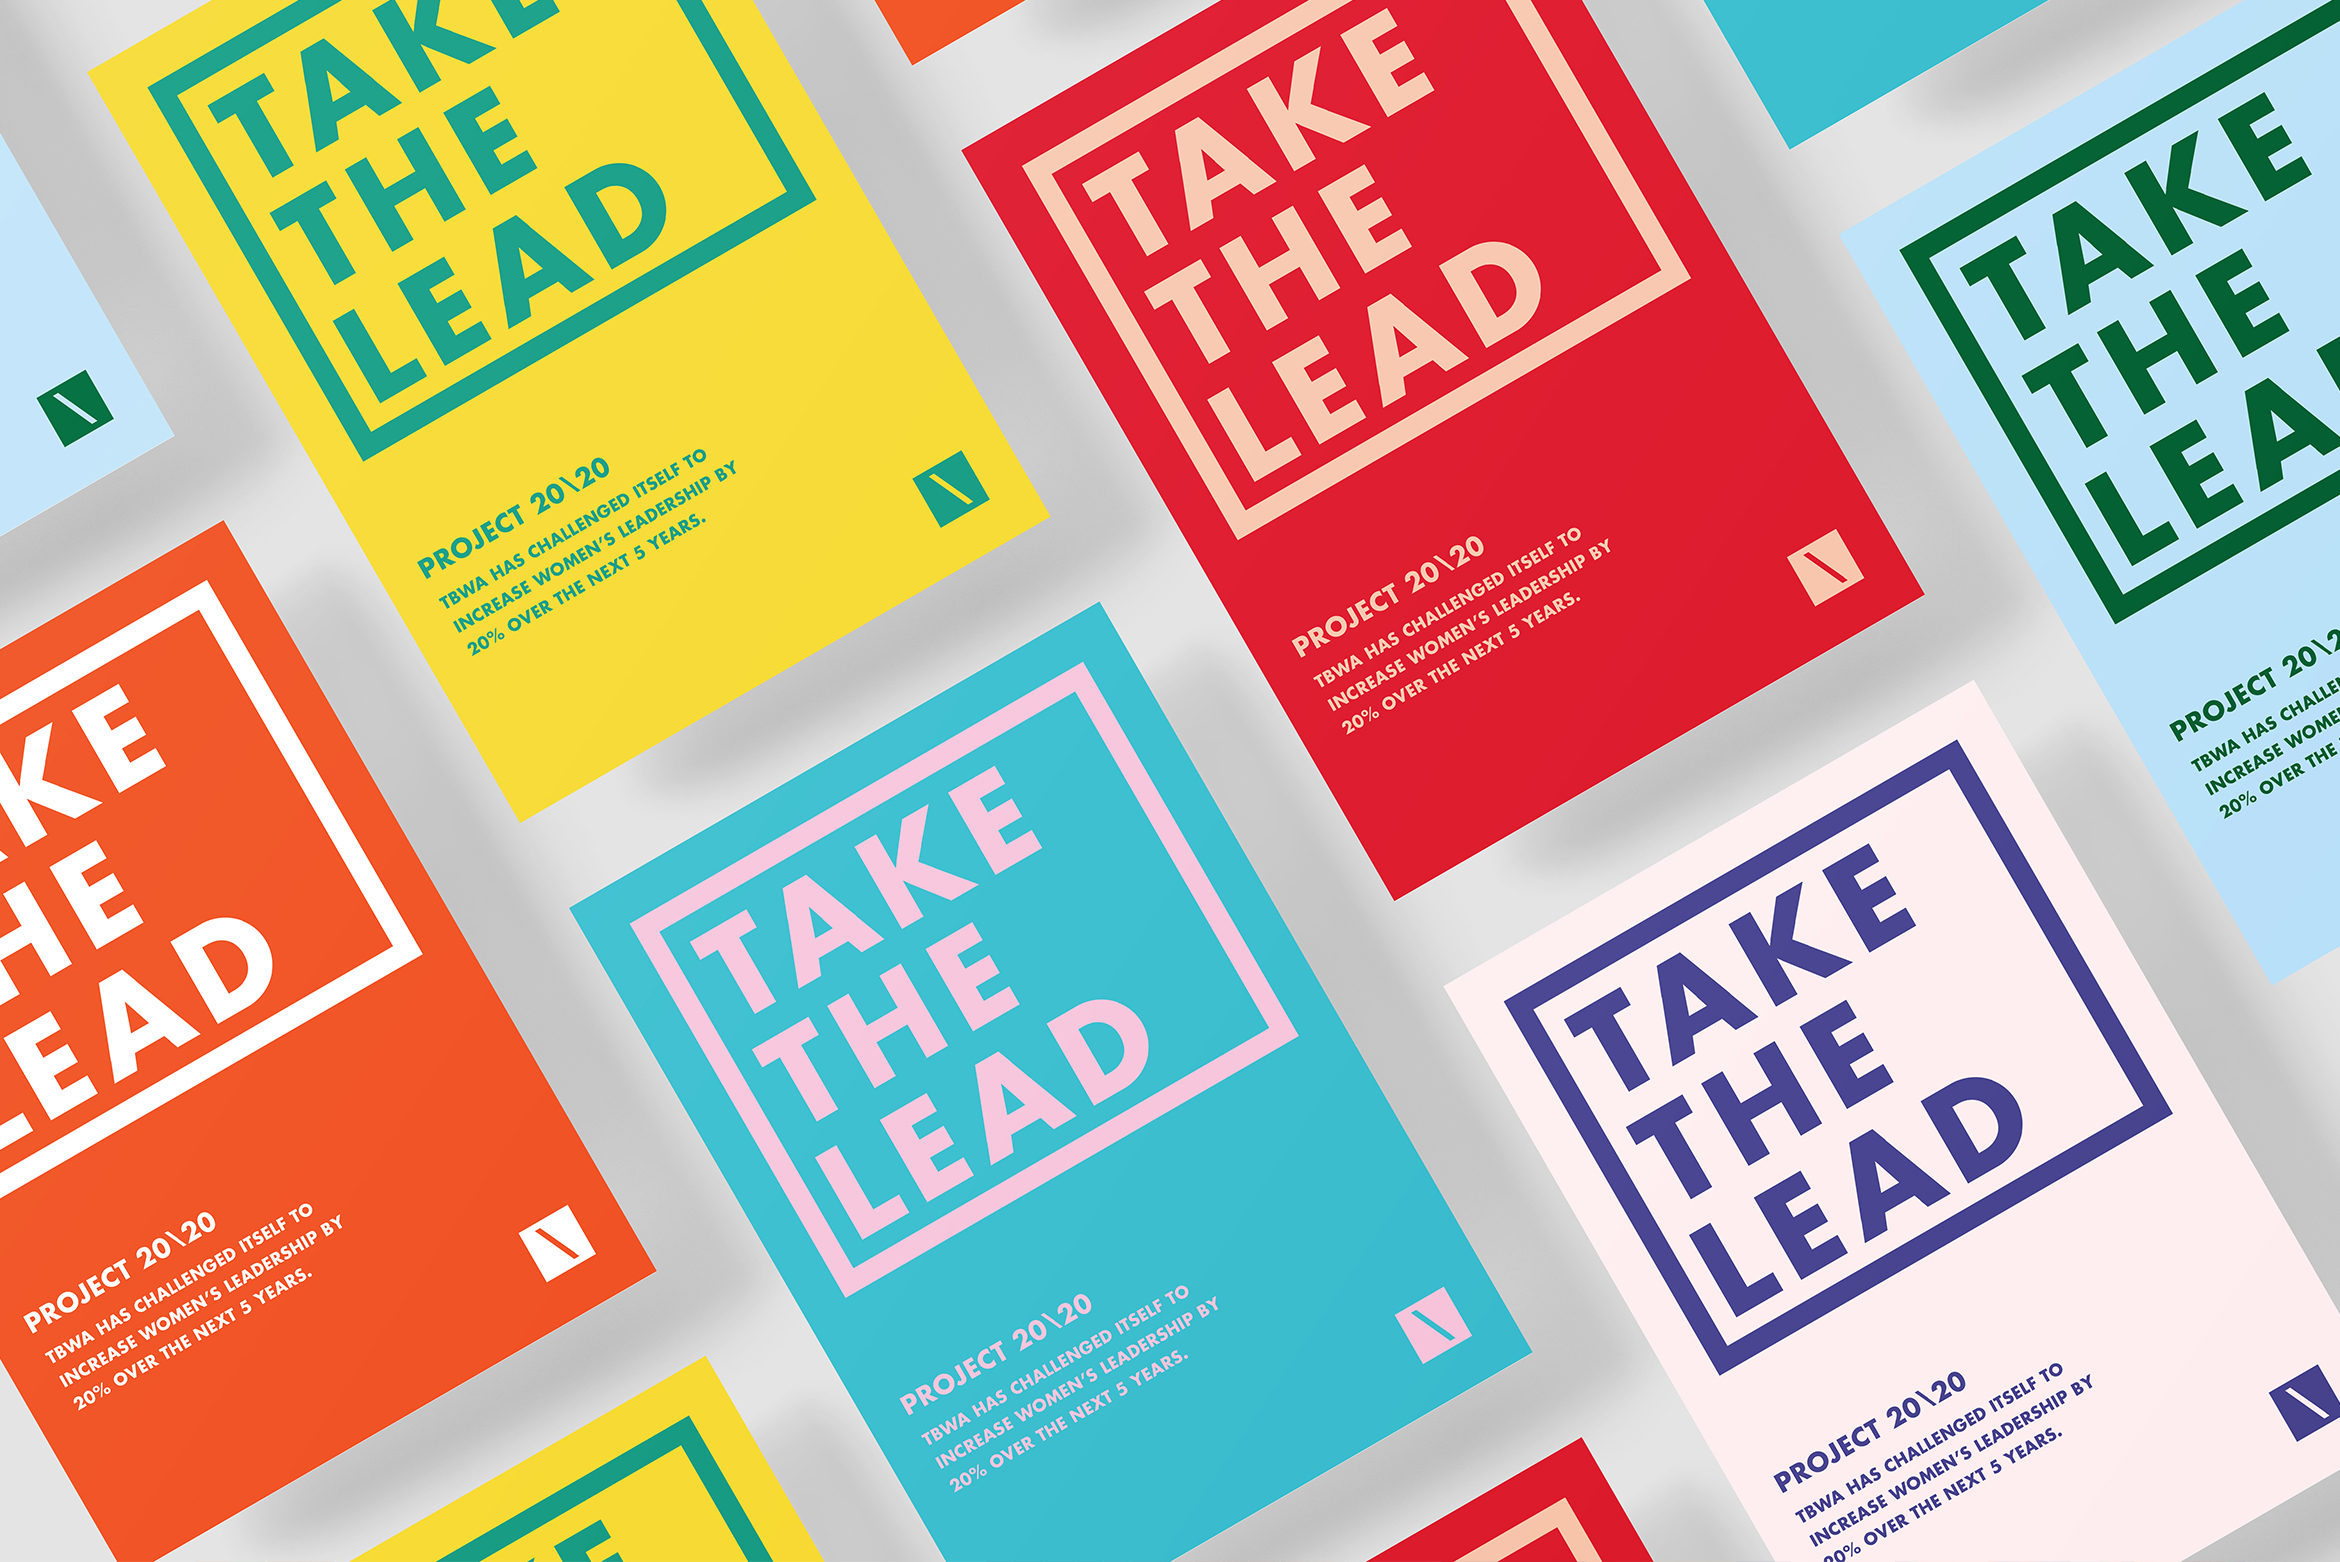 take_the_lead_4